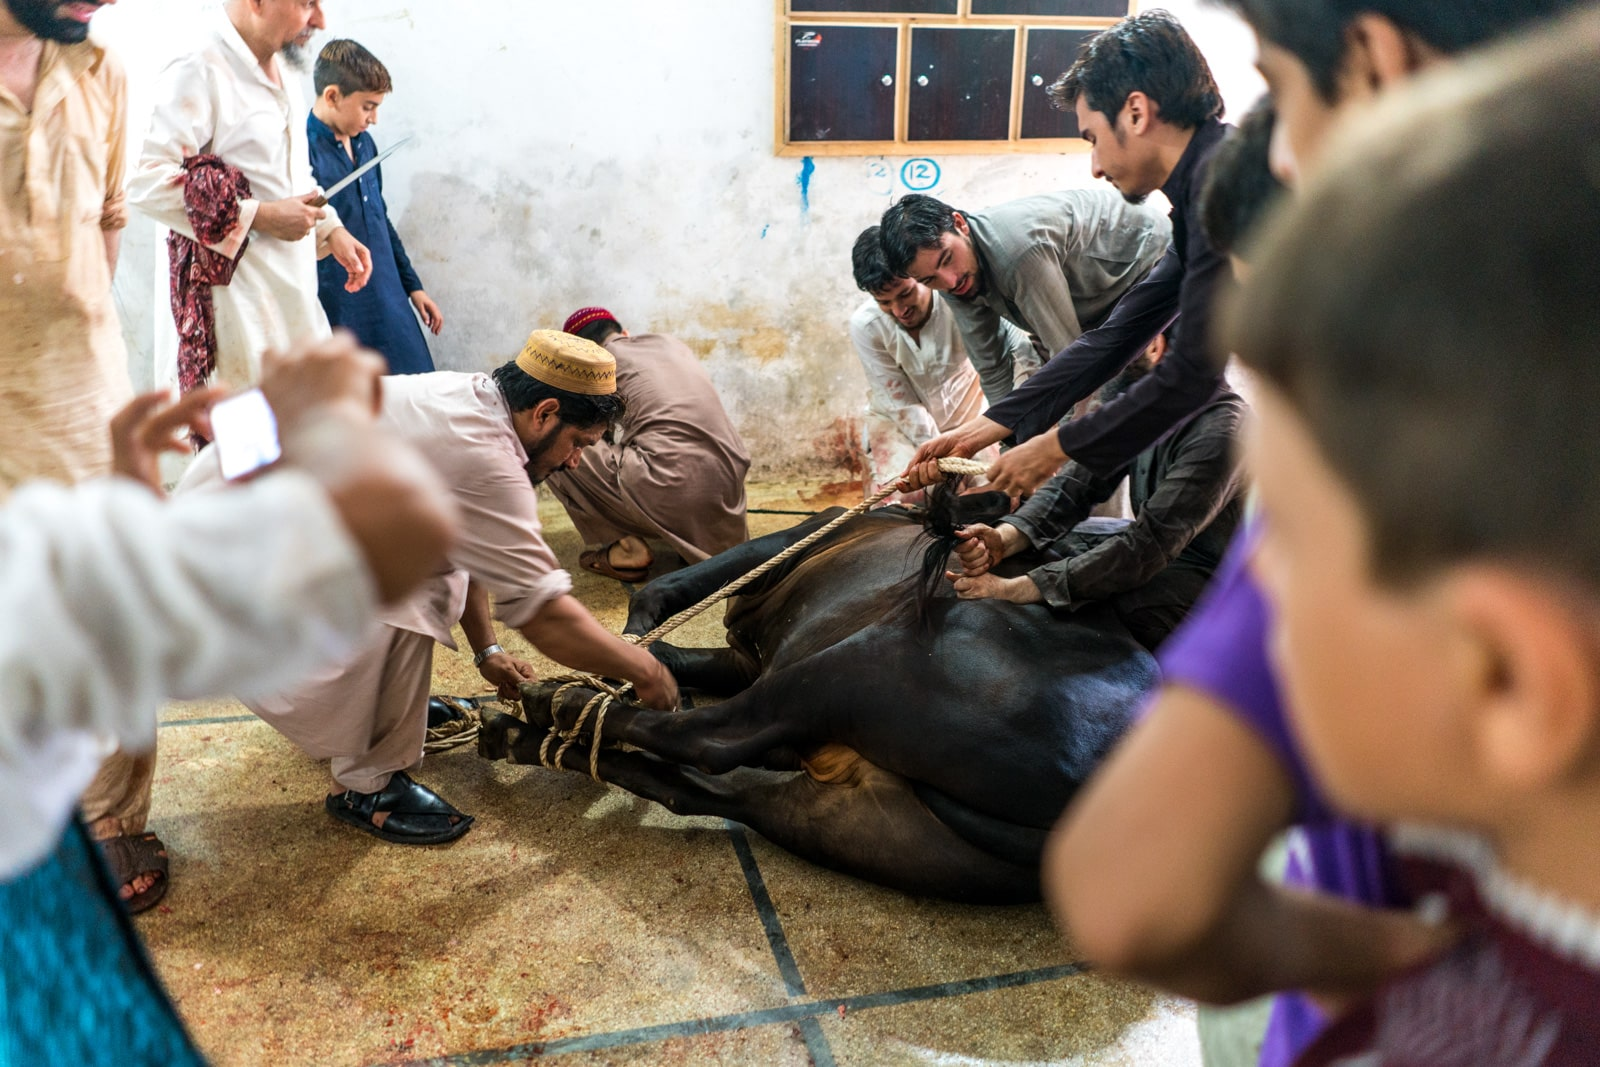 Celebrating Eid al-Adha in Lahore, Pakistan - Men tying up a cow's legs with rope - Lost With Purpose travel blog